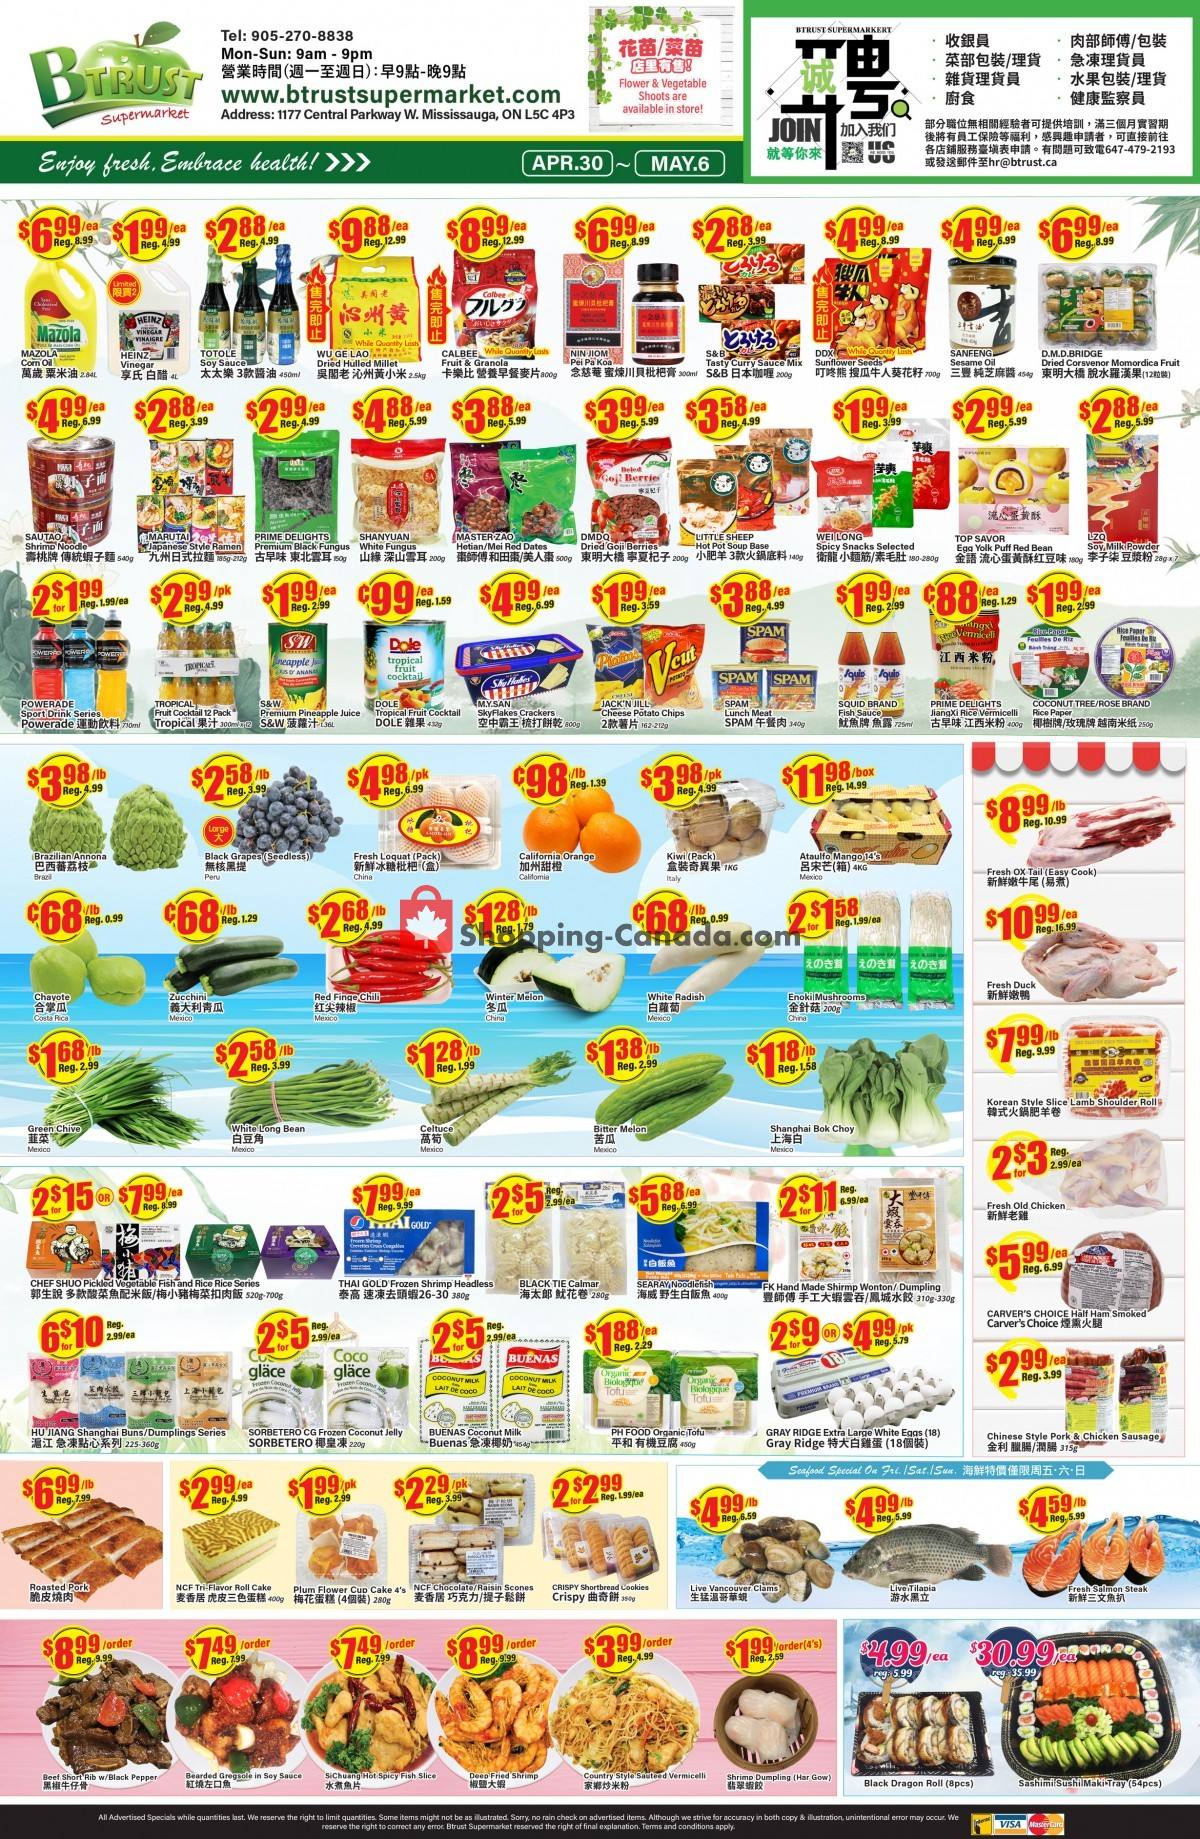 Flyer Btrust Supermarket Canada - from Friday April 30, 2021 to Thursday May 6, 2021